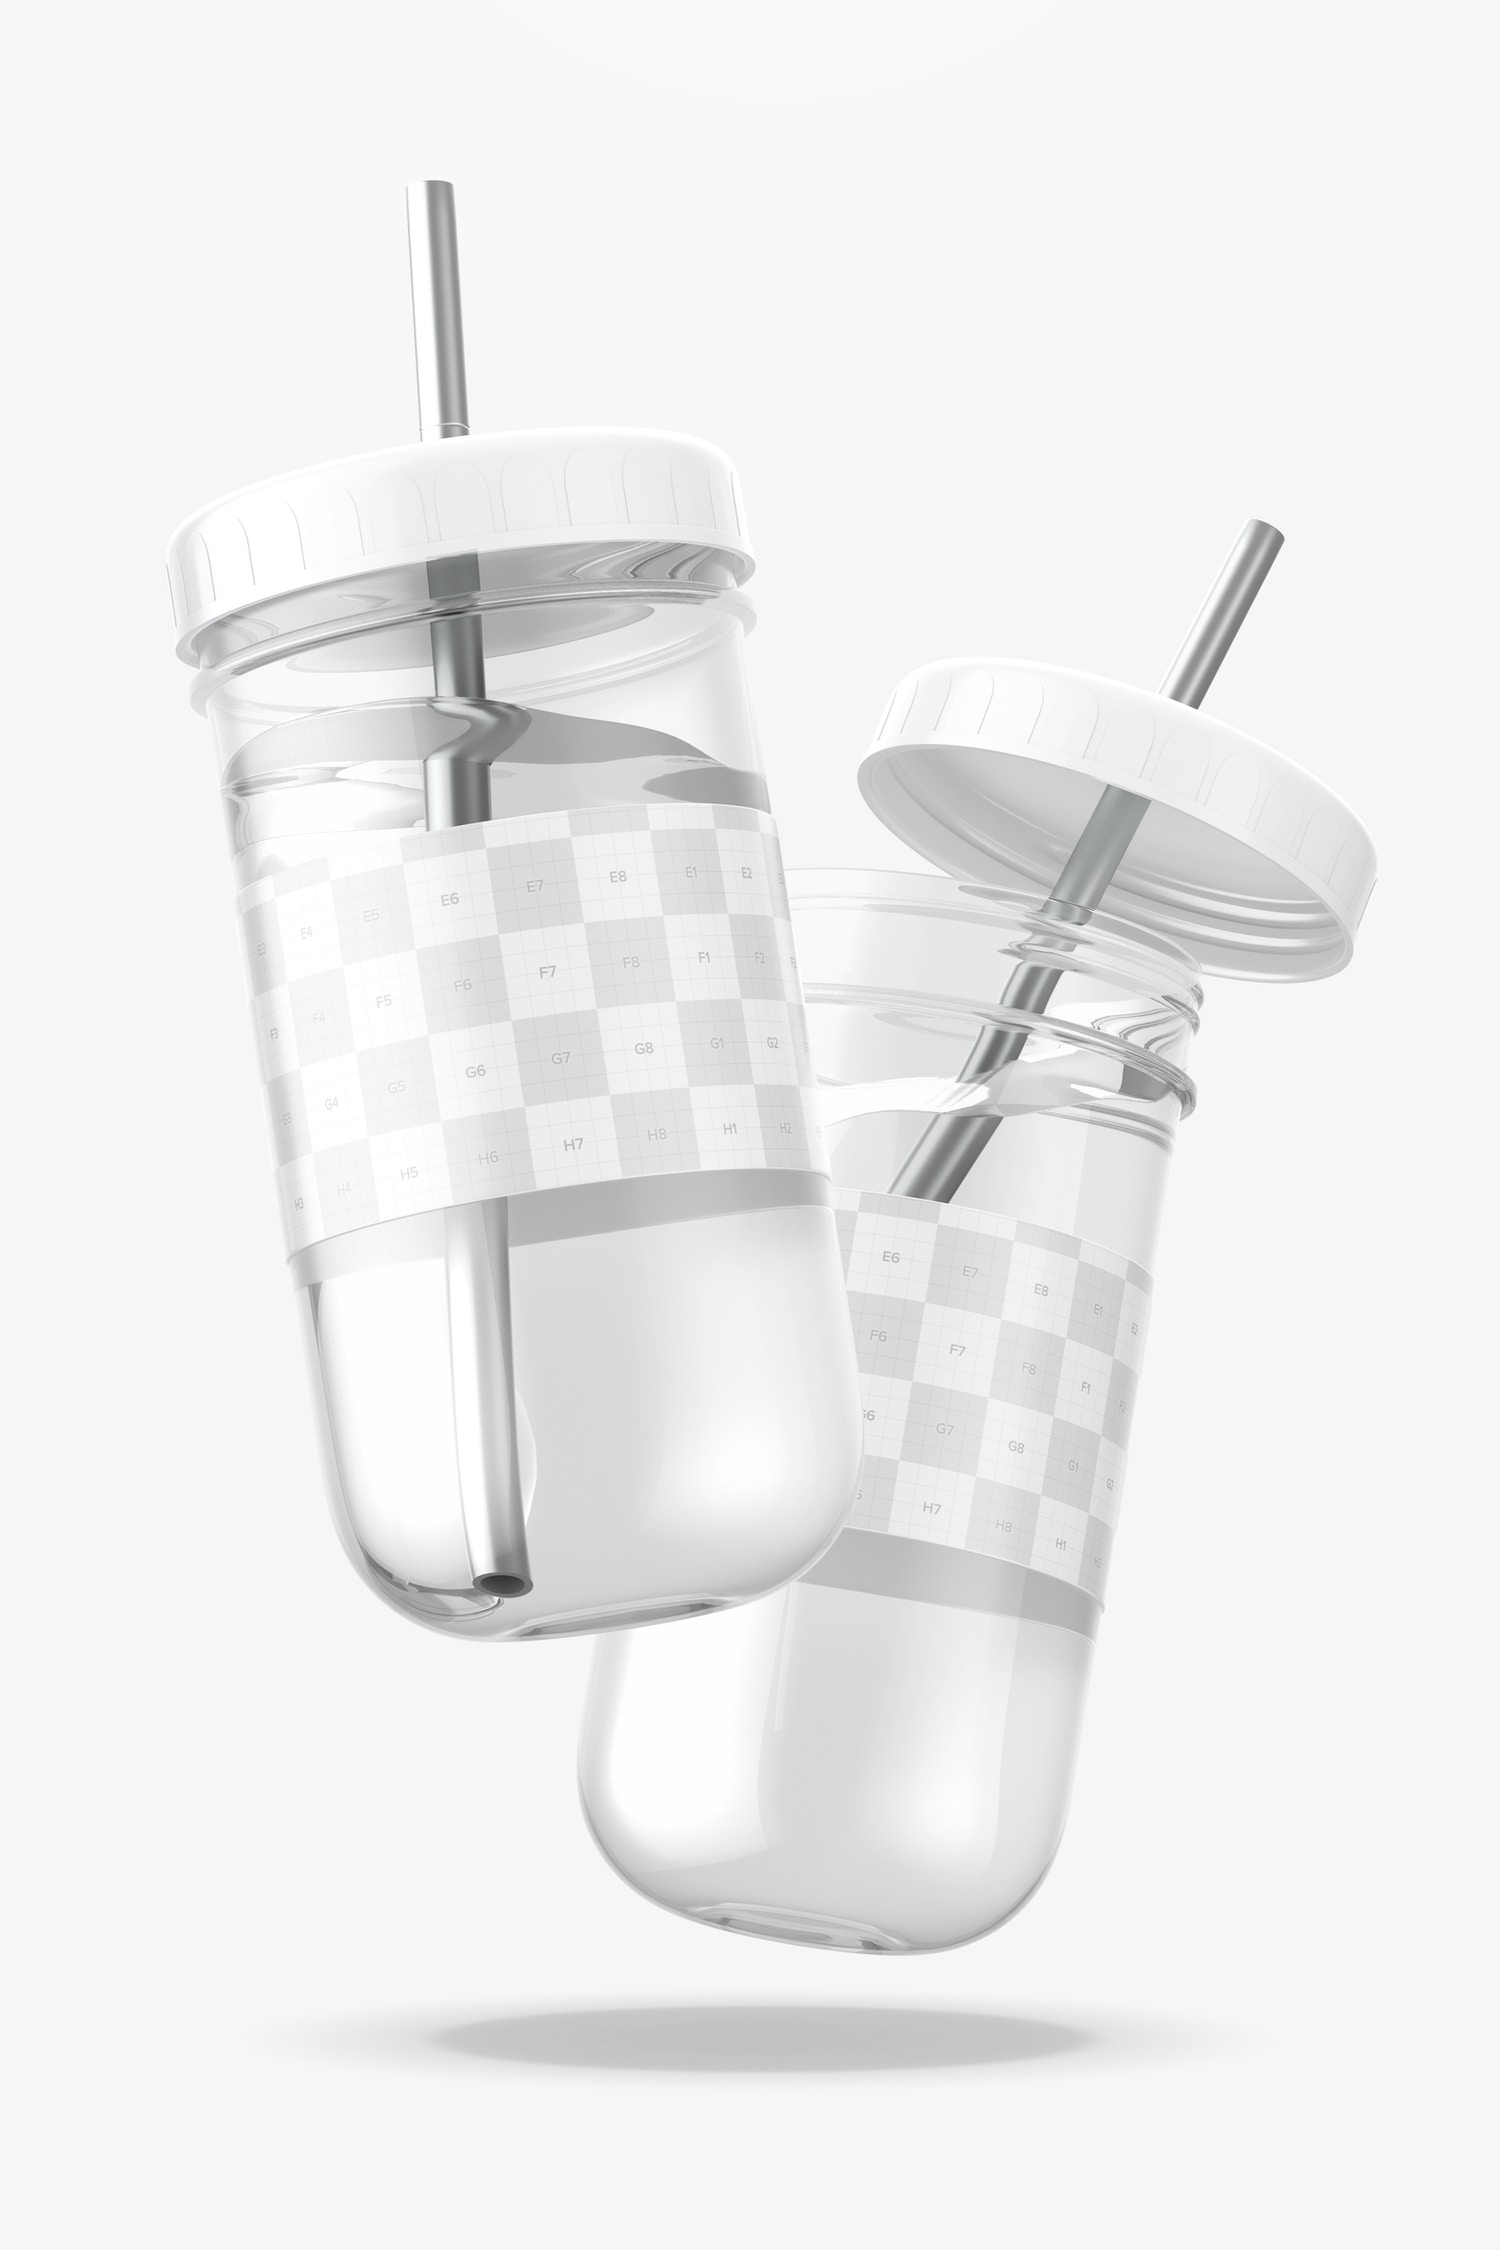 Smoothie Cups with Lid Mockup, Floating